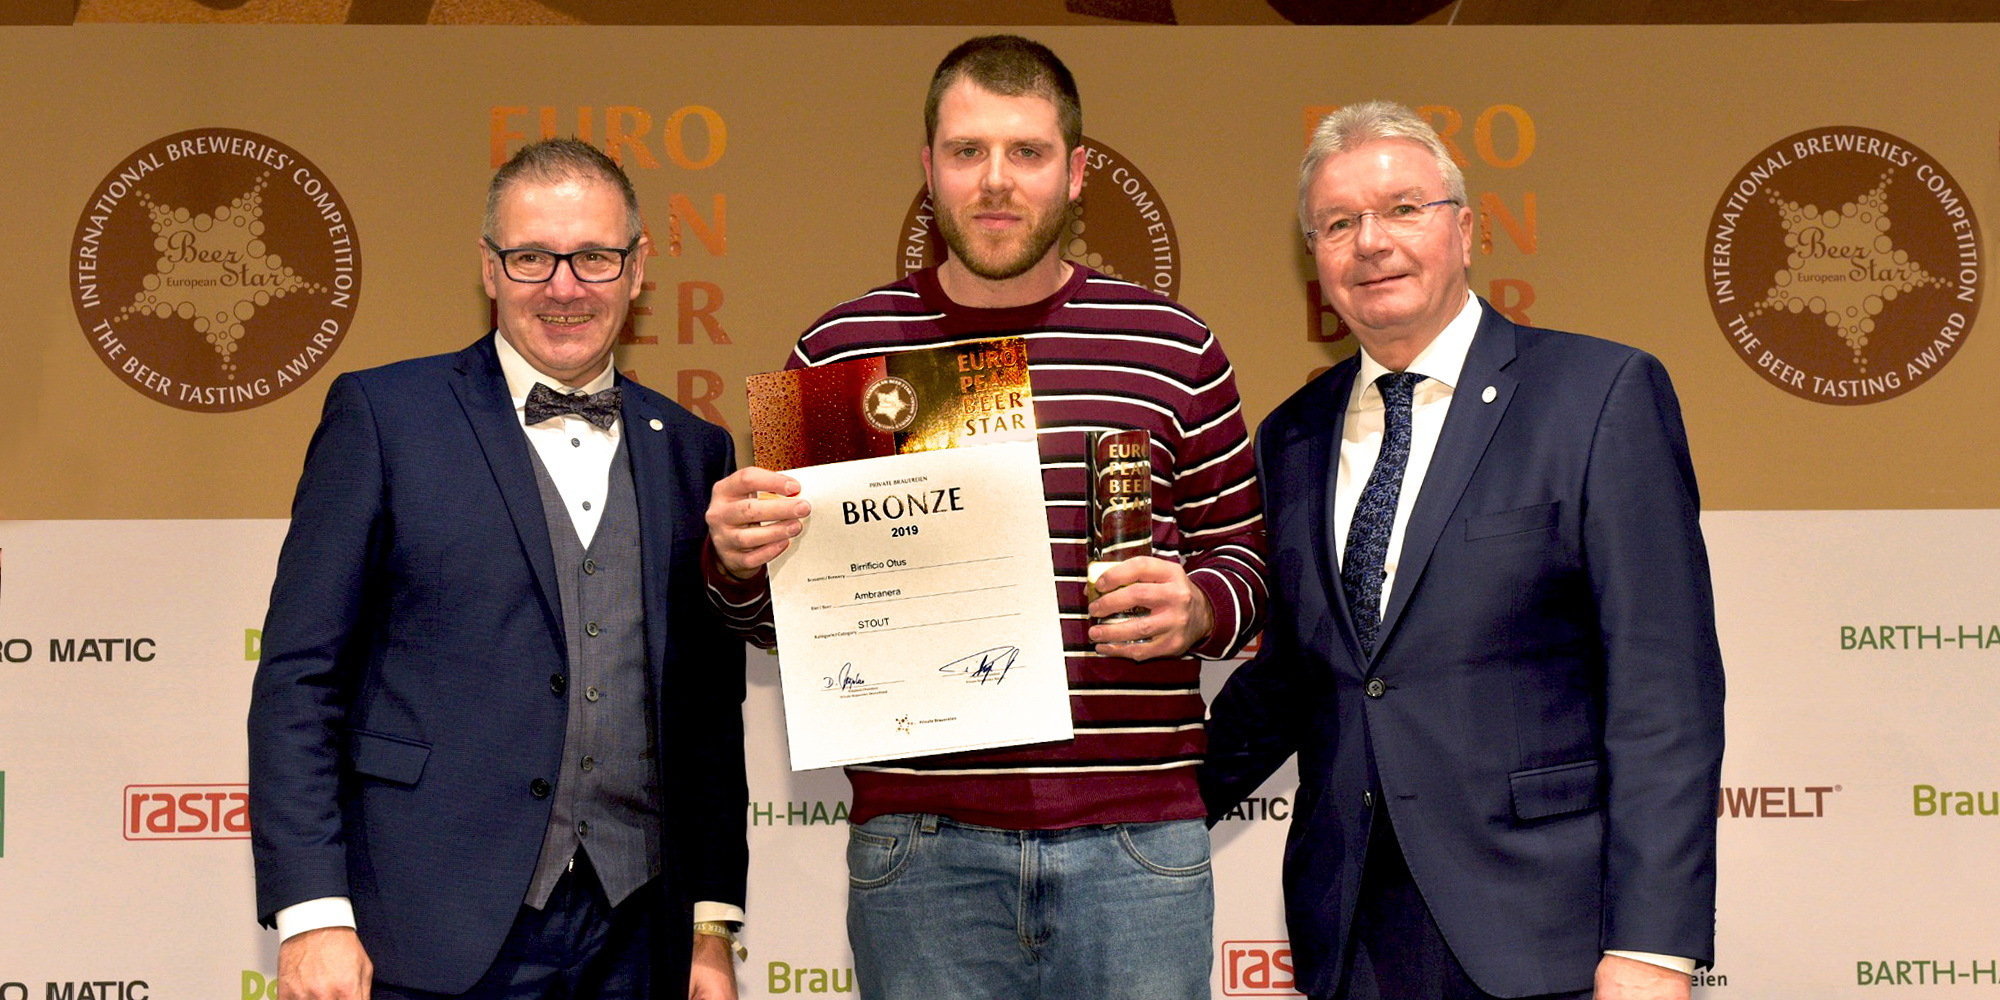 AMBRANERA BY OTUS WON THE BRONZE MEDAL AT EUROPEAN BEER STAR 2019